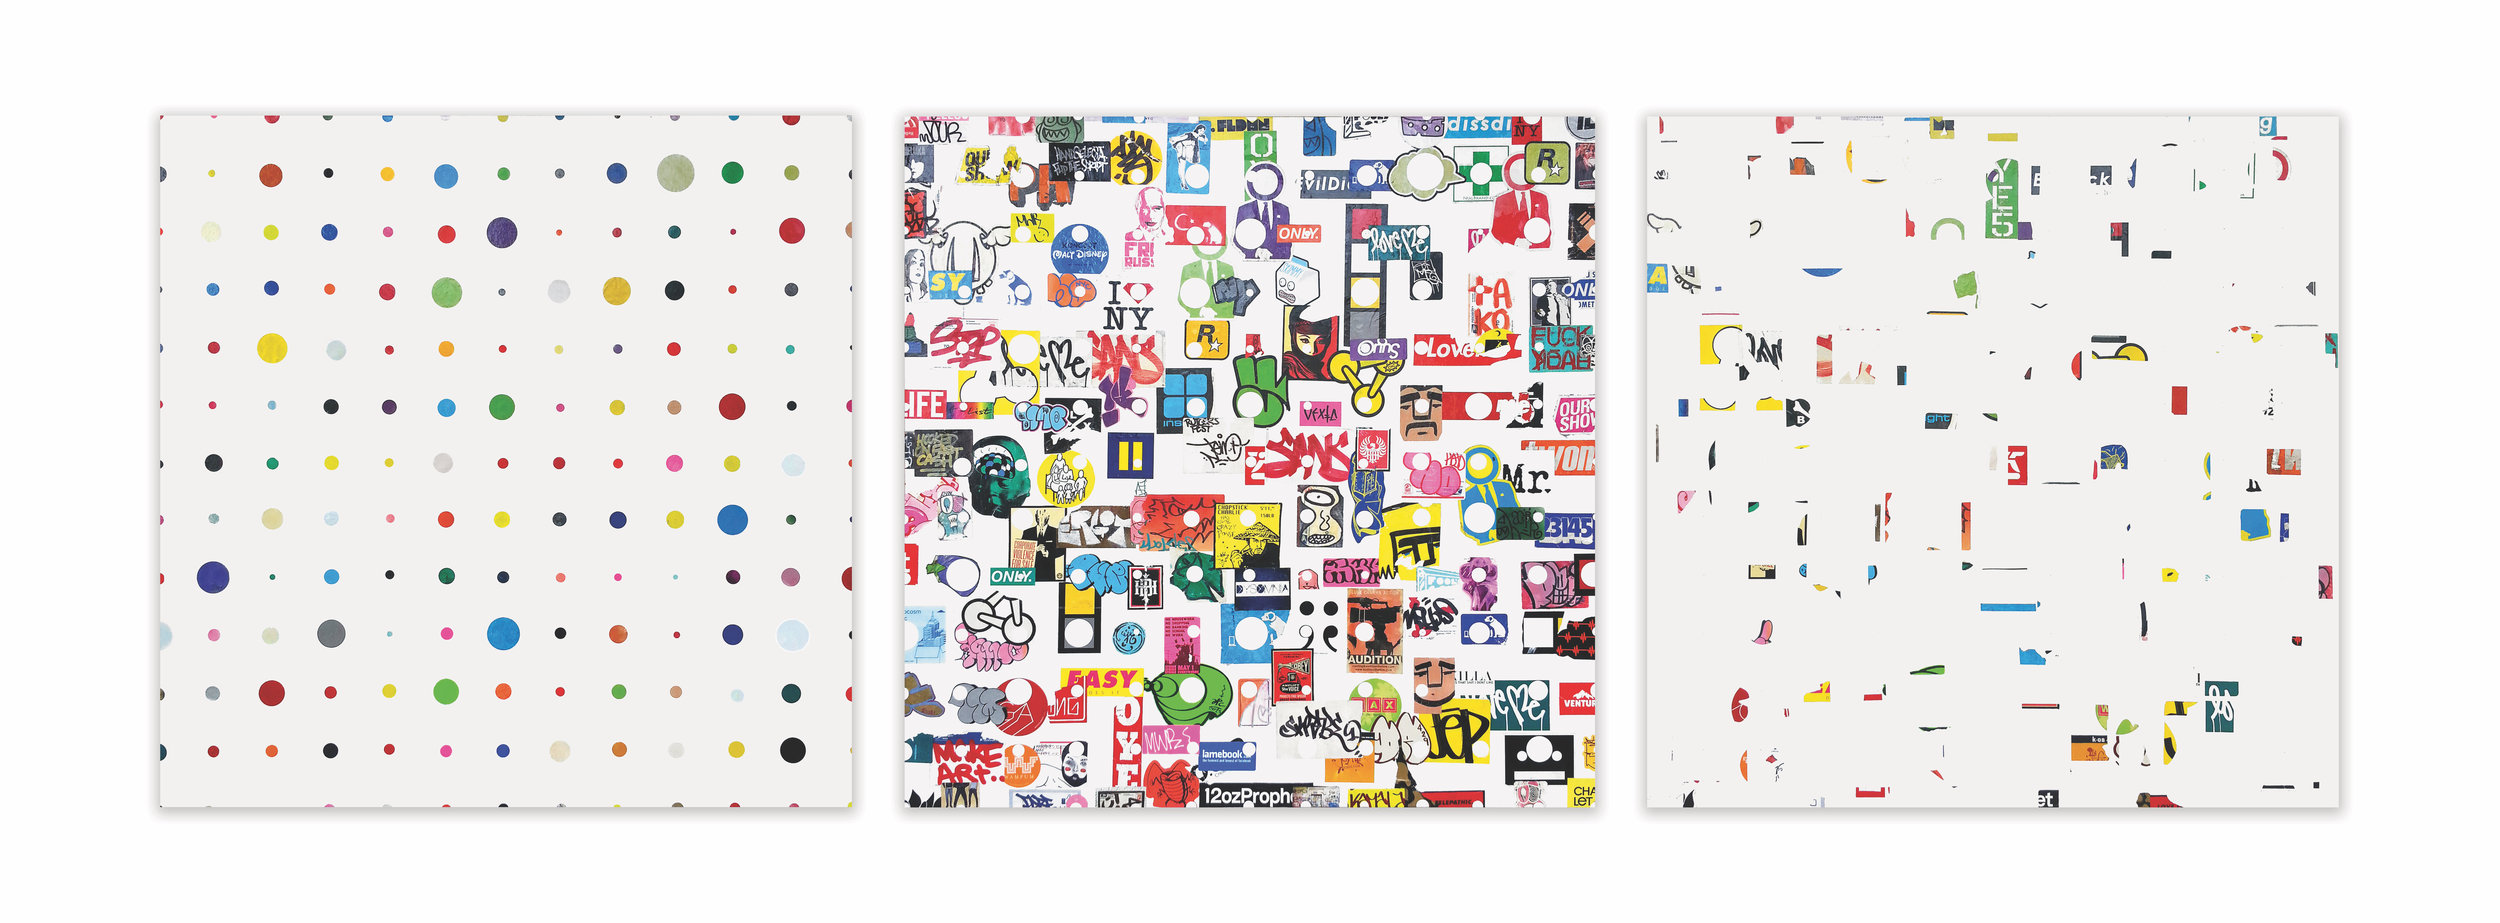 Egon Zippel, 'Broadway Boogie Woogie' (Tag Style), 2014, Stickers from NYC and pencil on canvas, Triptych, each panel 48 x 48 inches. .jpg